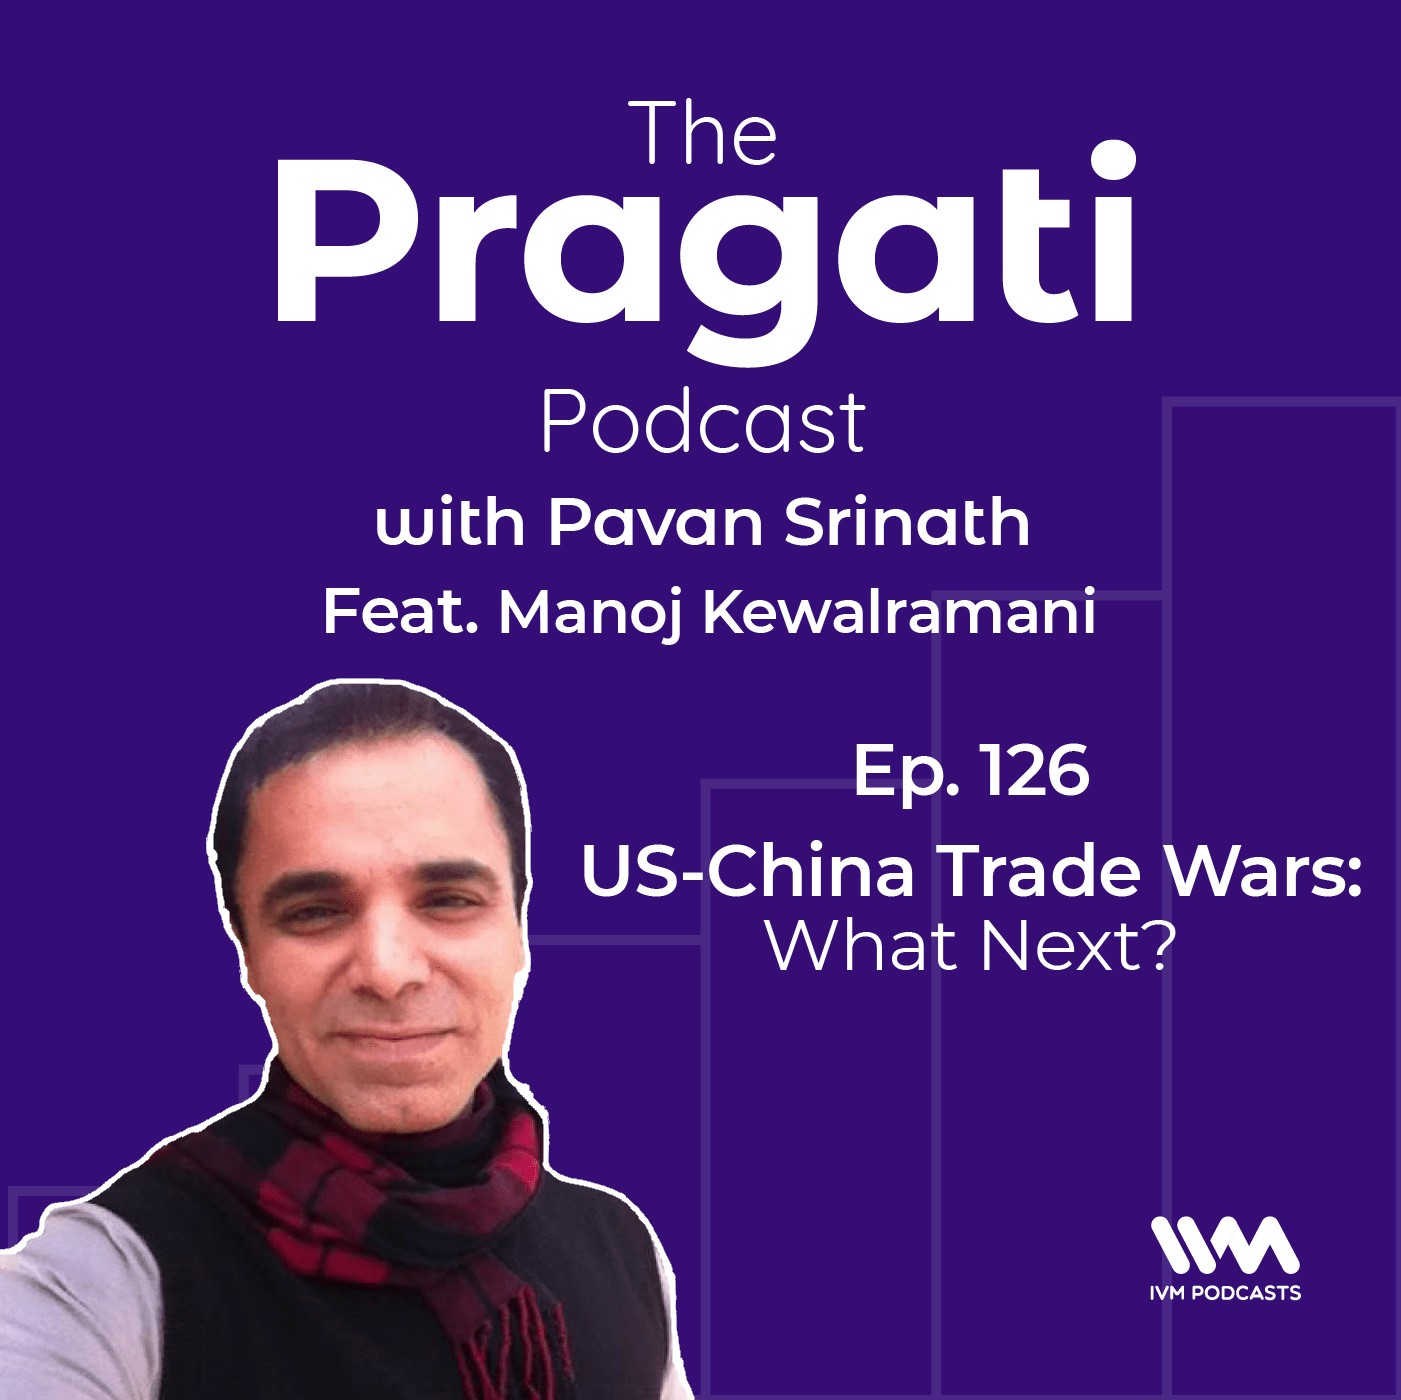 Ep. 126: US-China Trade Wars: What Next?